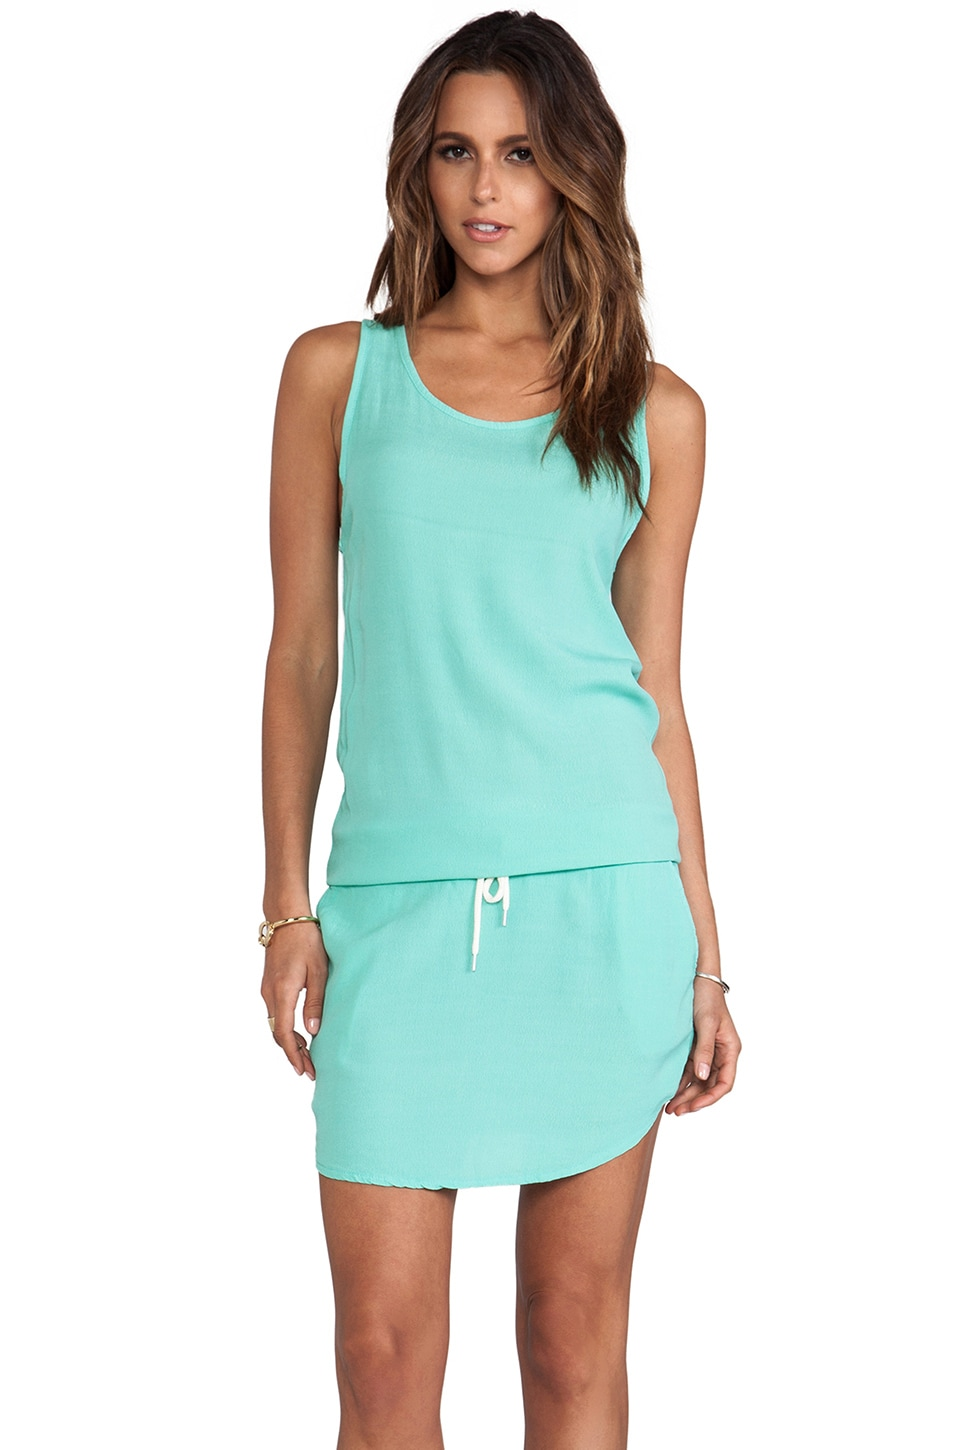 MONROW Crepe Basics Tennis Dress in Turquoise